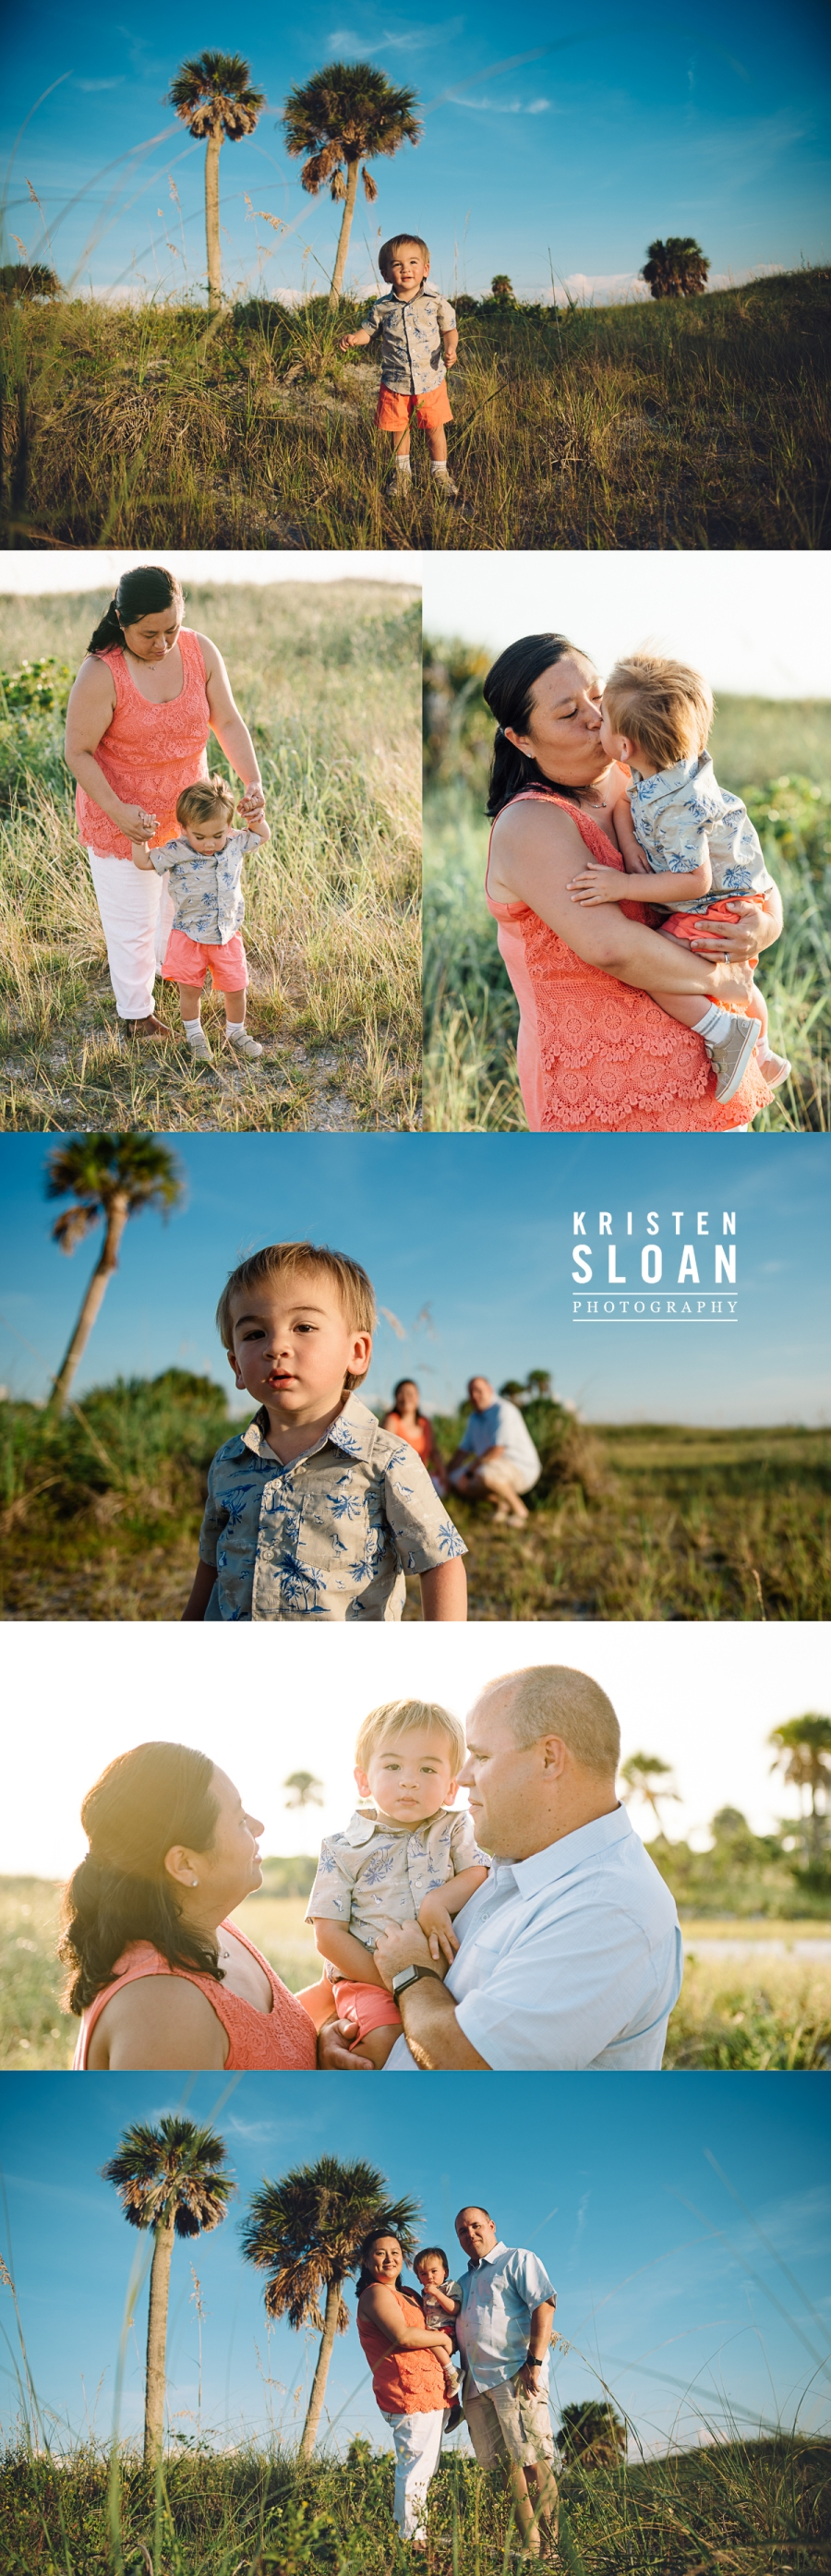 Treasure Island Florida Family Beach Sunset Photos in Coral, White & Blue